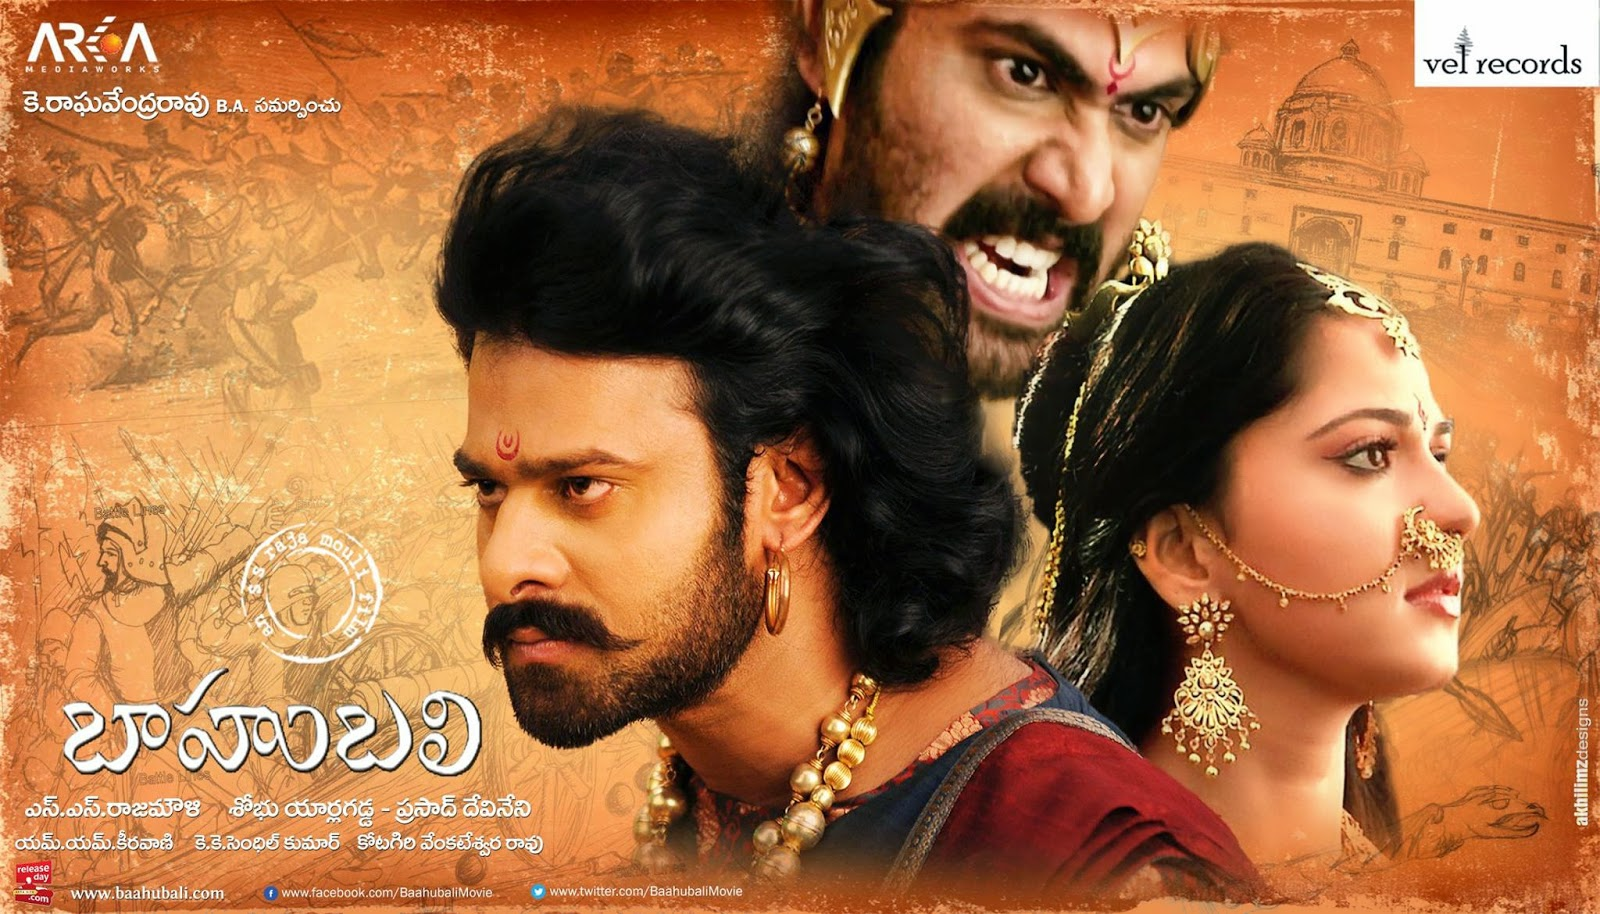 Prabhas, Anushka Shetty, Tamannaah Baahubali movie Box Office Records made by Baahubali Number of screens 5,200 screens, Lifetime nett gross (India) 600 Crore, Highest gross, Baahubali is Top Rank on MT WIKI List of highest-grossing Indian Tamil films